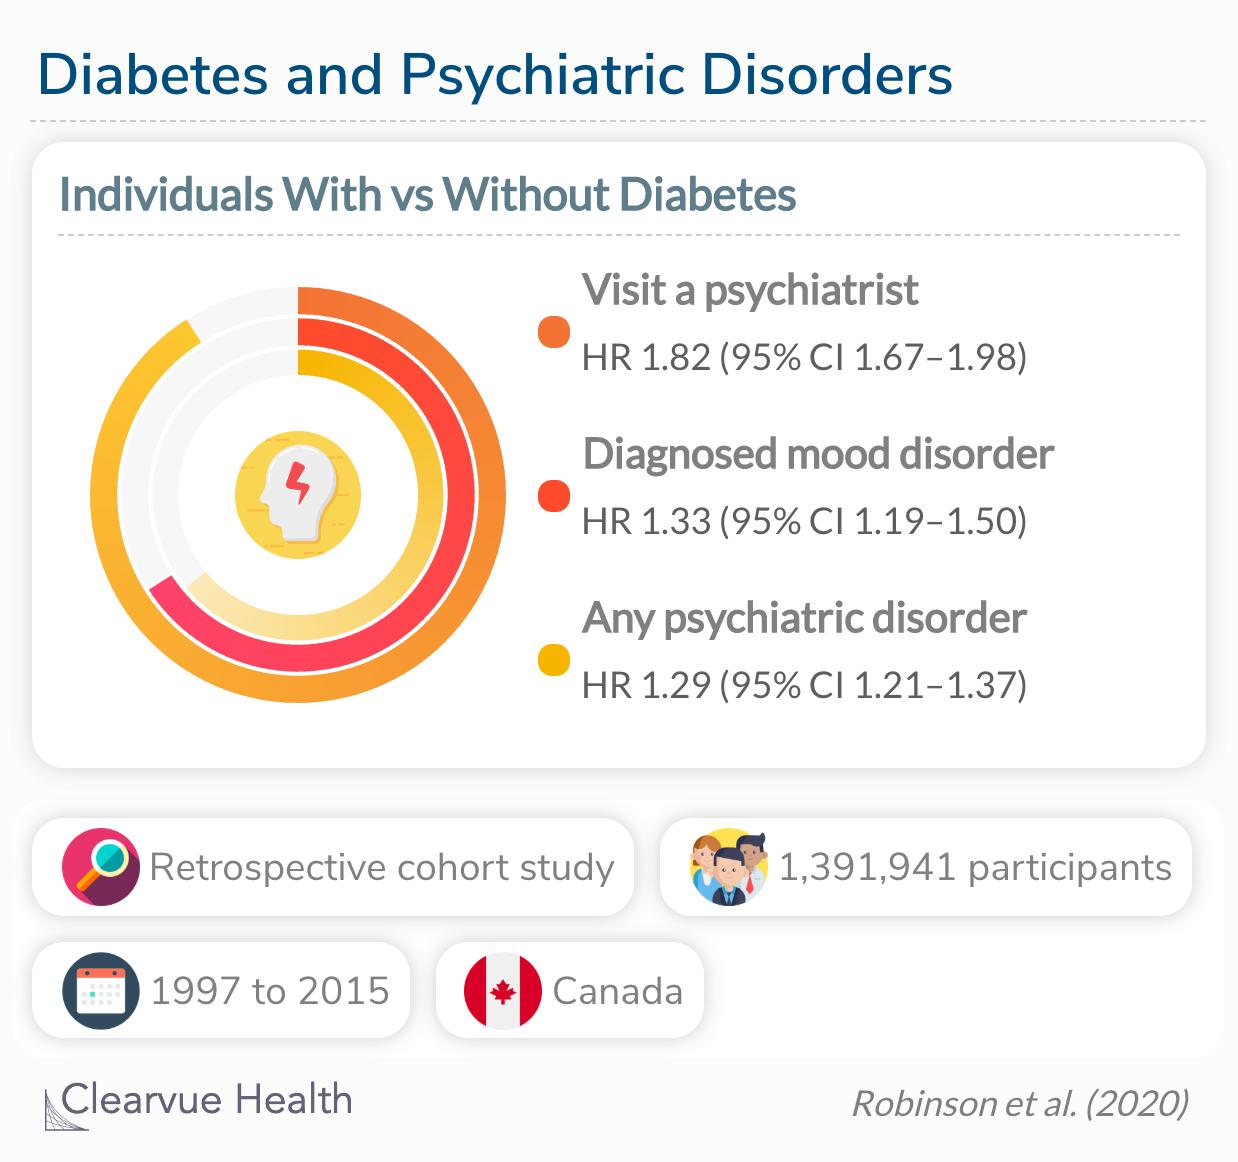 Individuals with diabetes are more likely to visit a psychiatrist, be diagnosed with a mood disorder, or diagnosed with any psychiatric disorder compared to those without diabetes.